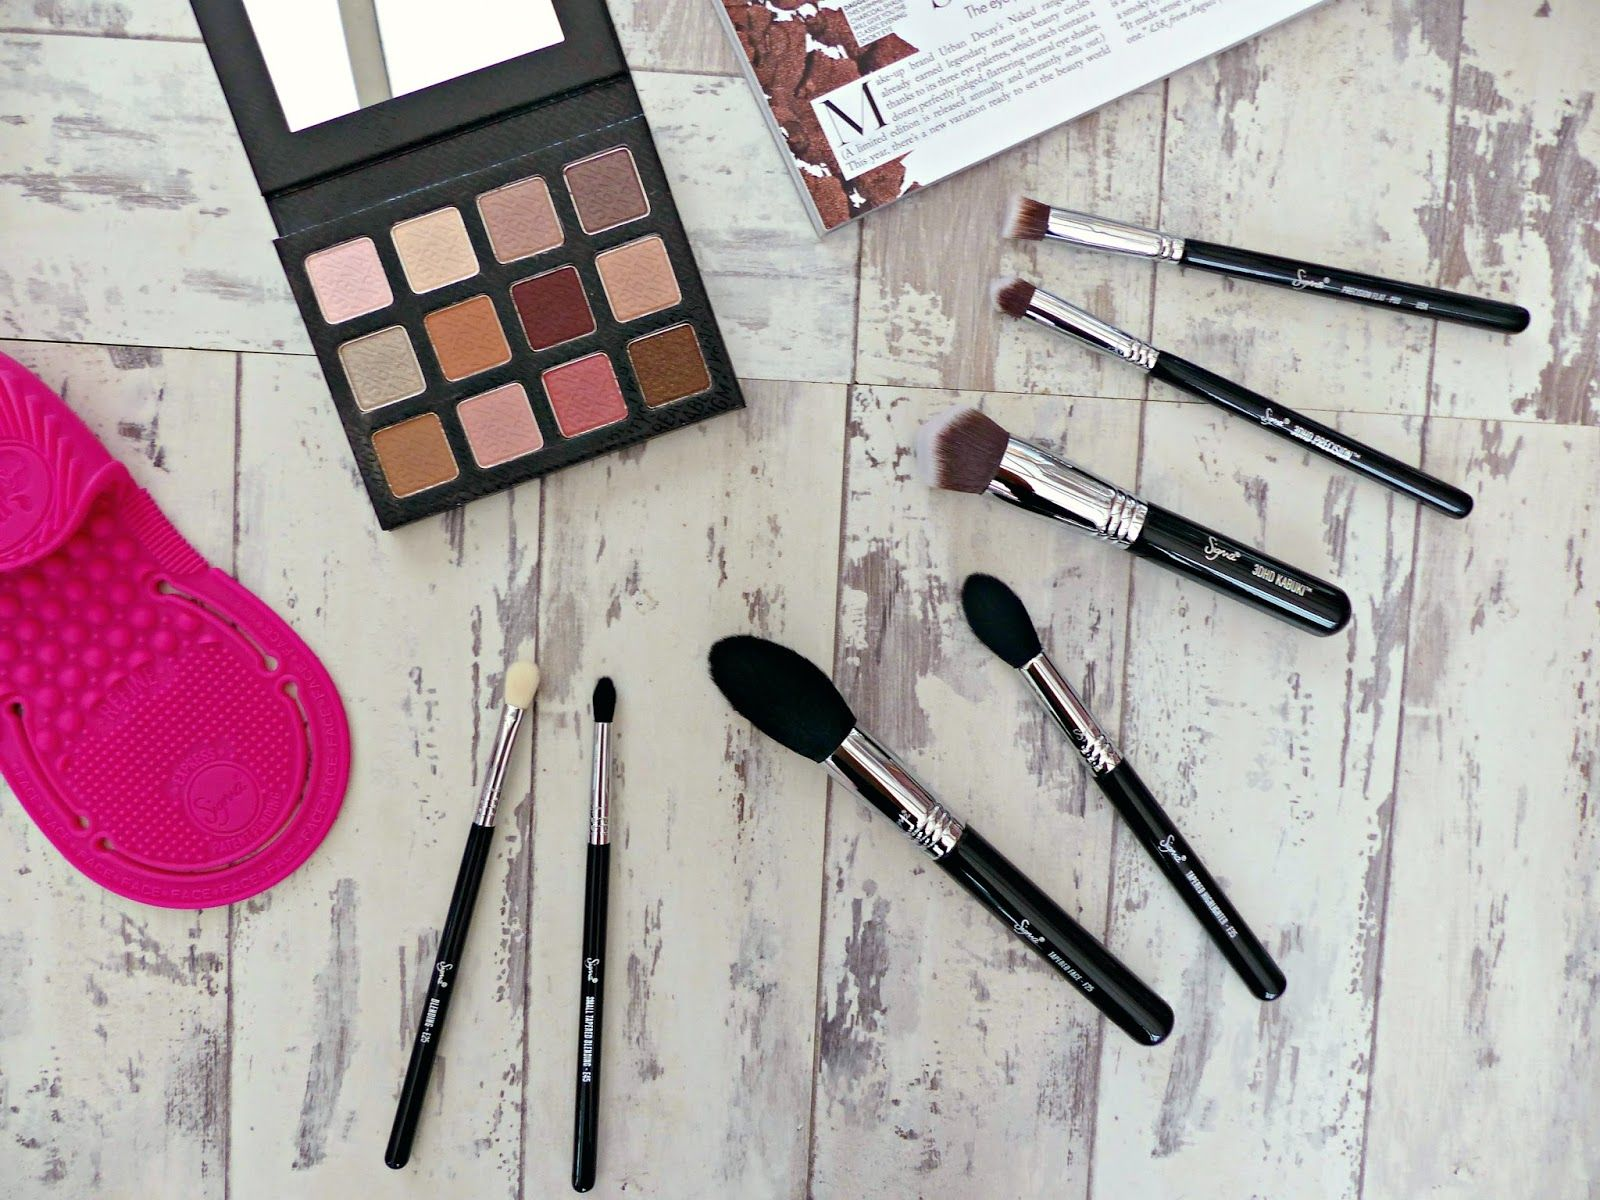 Discovering Sigma Beauty | Brush, Makeup & Tool Reviews  http://www.jasminetalksbeauty.com/2015/09/discovering-sigma-beauty-brush-makeup.html  #bblogger #bbloggers #beautyblogger #sigmabeauty #makeup #beauty